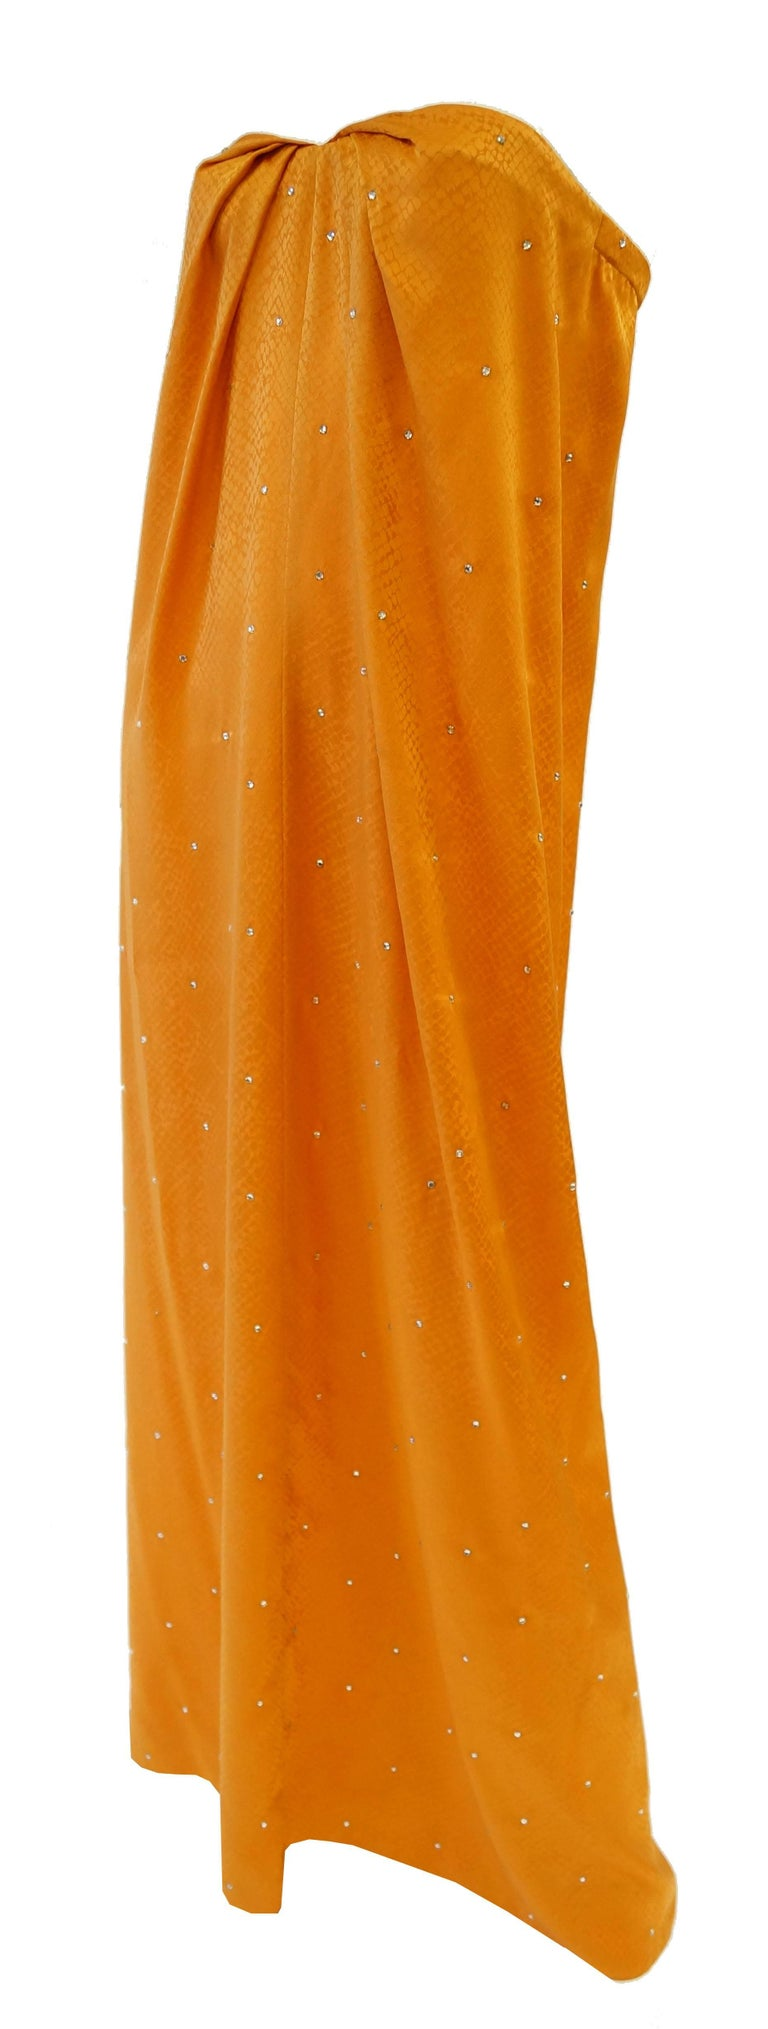 1980's Holly's Harp Silk Tangerine Snake Print and Rhinestone Evening Dress In Excellent Condition For Sale In Houston, TX